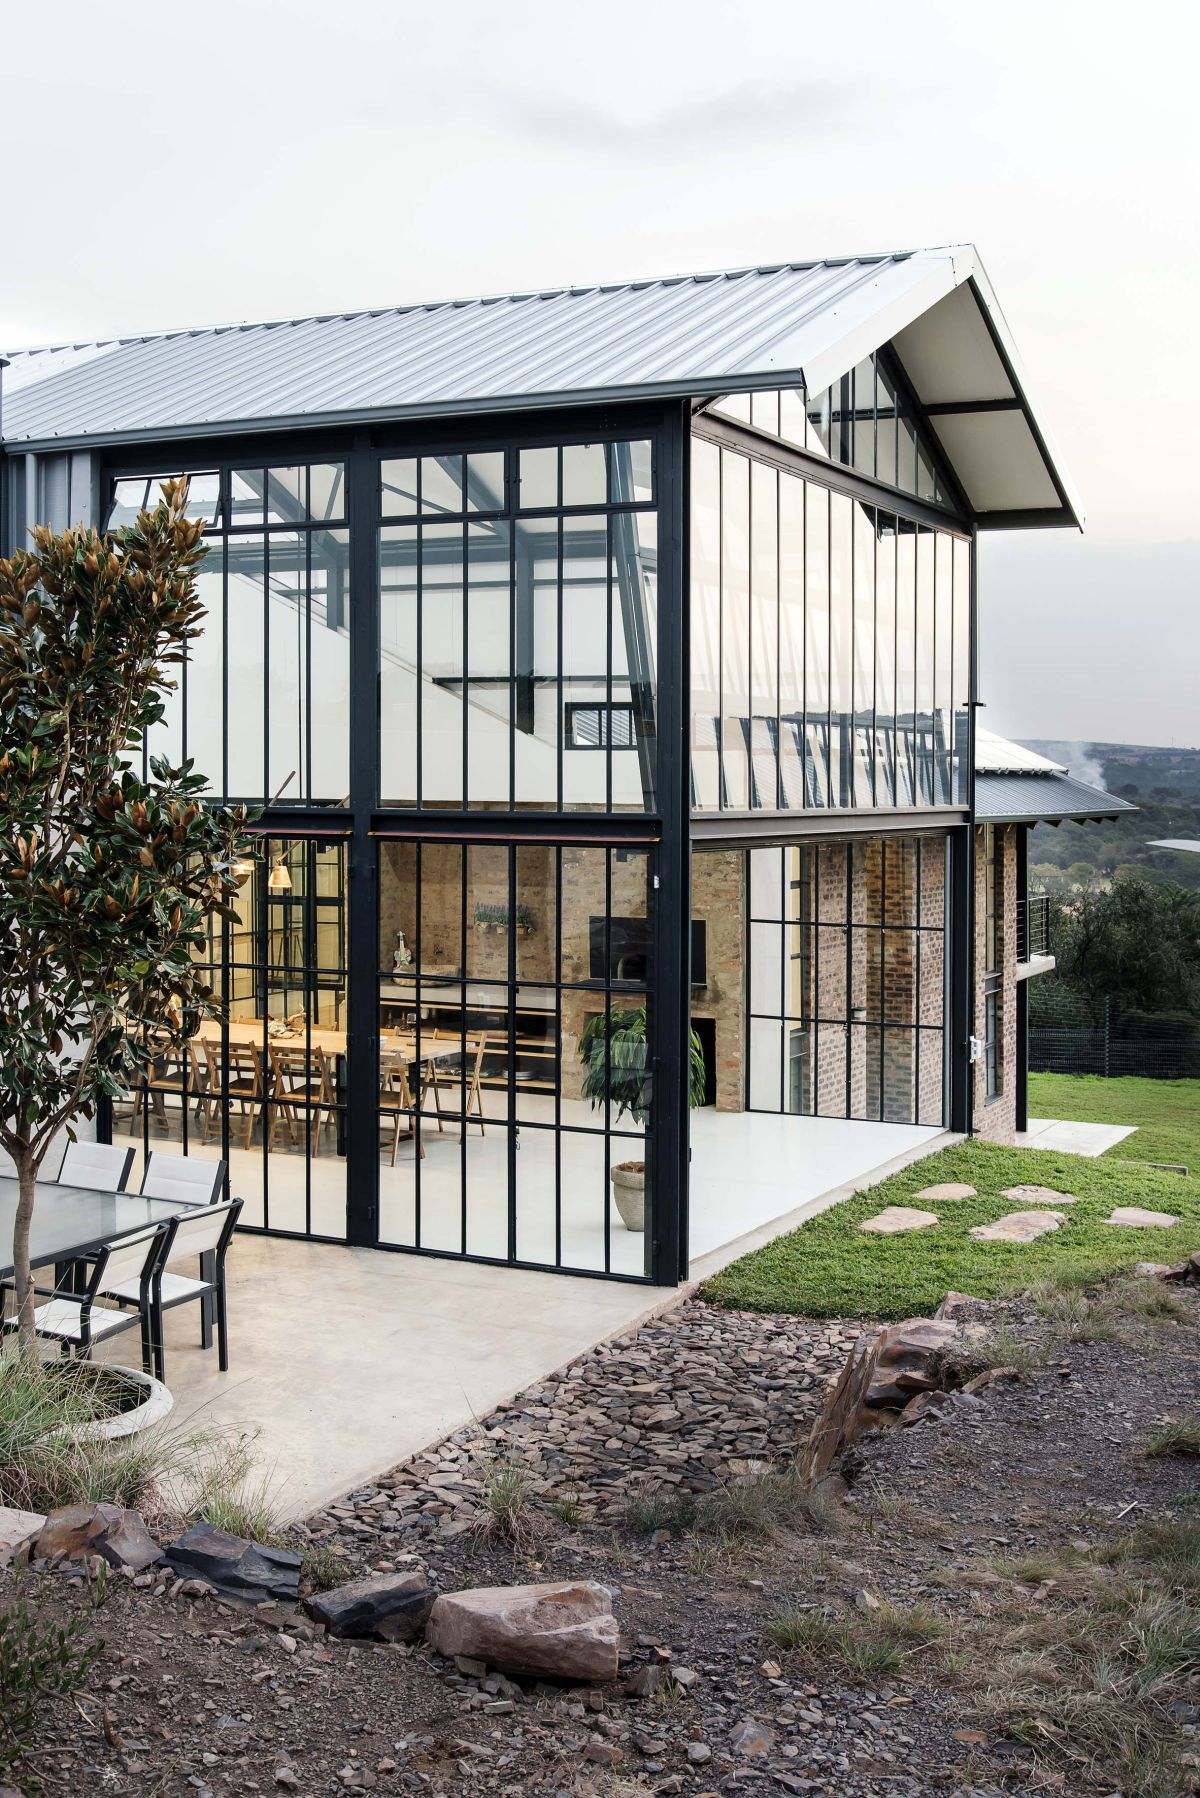 The double-height glass volume has a gabled roof and is filled with indoor plants which strengthens the connection between the house and the outdoors